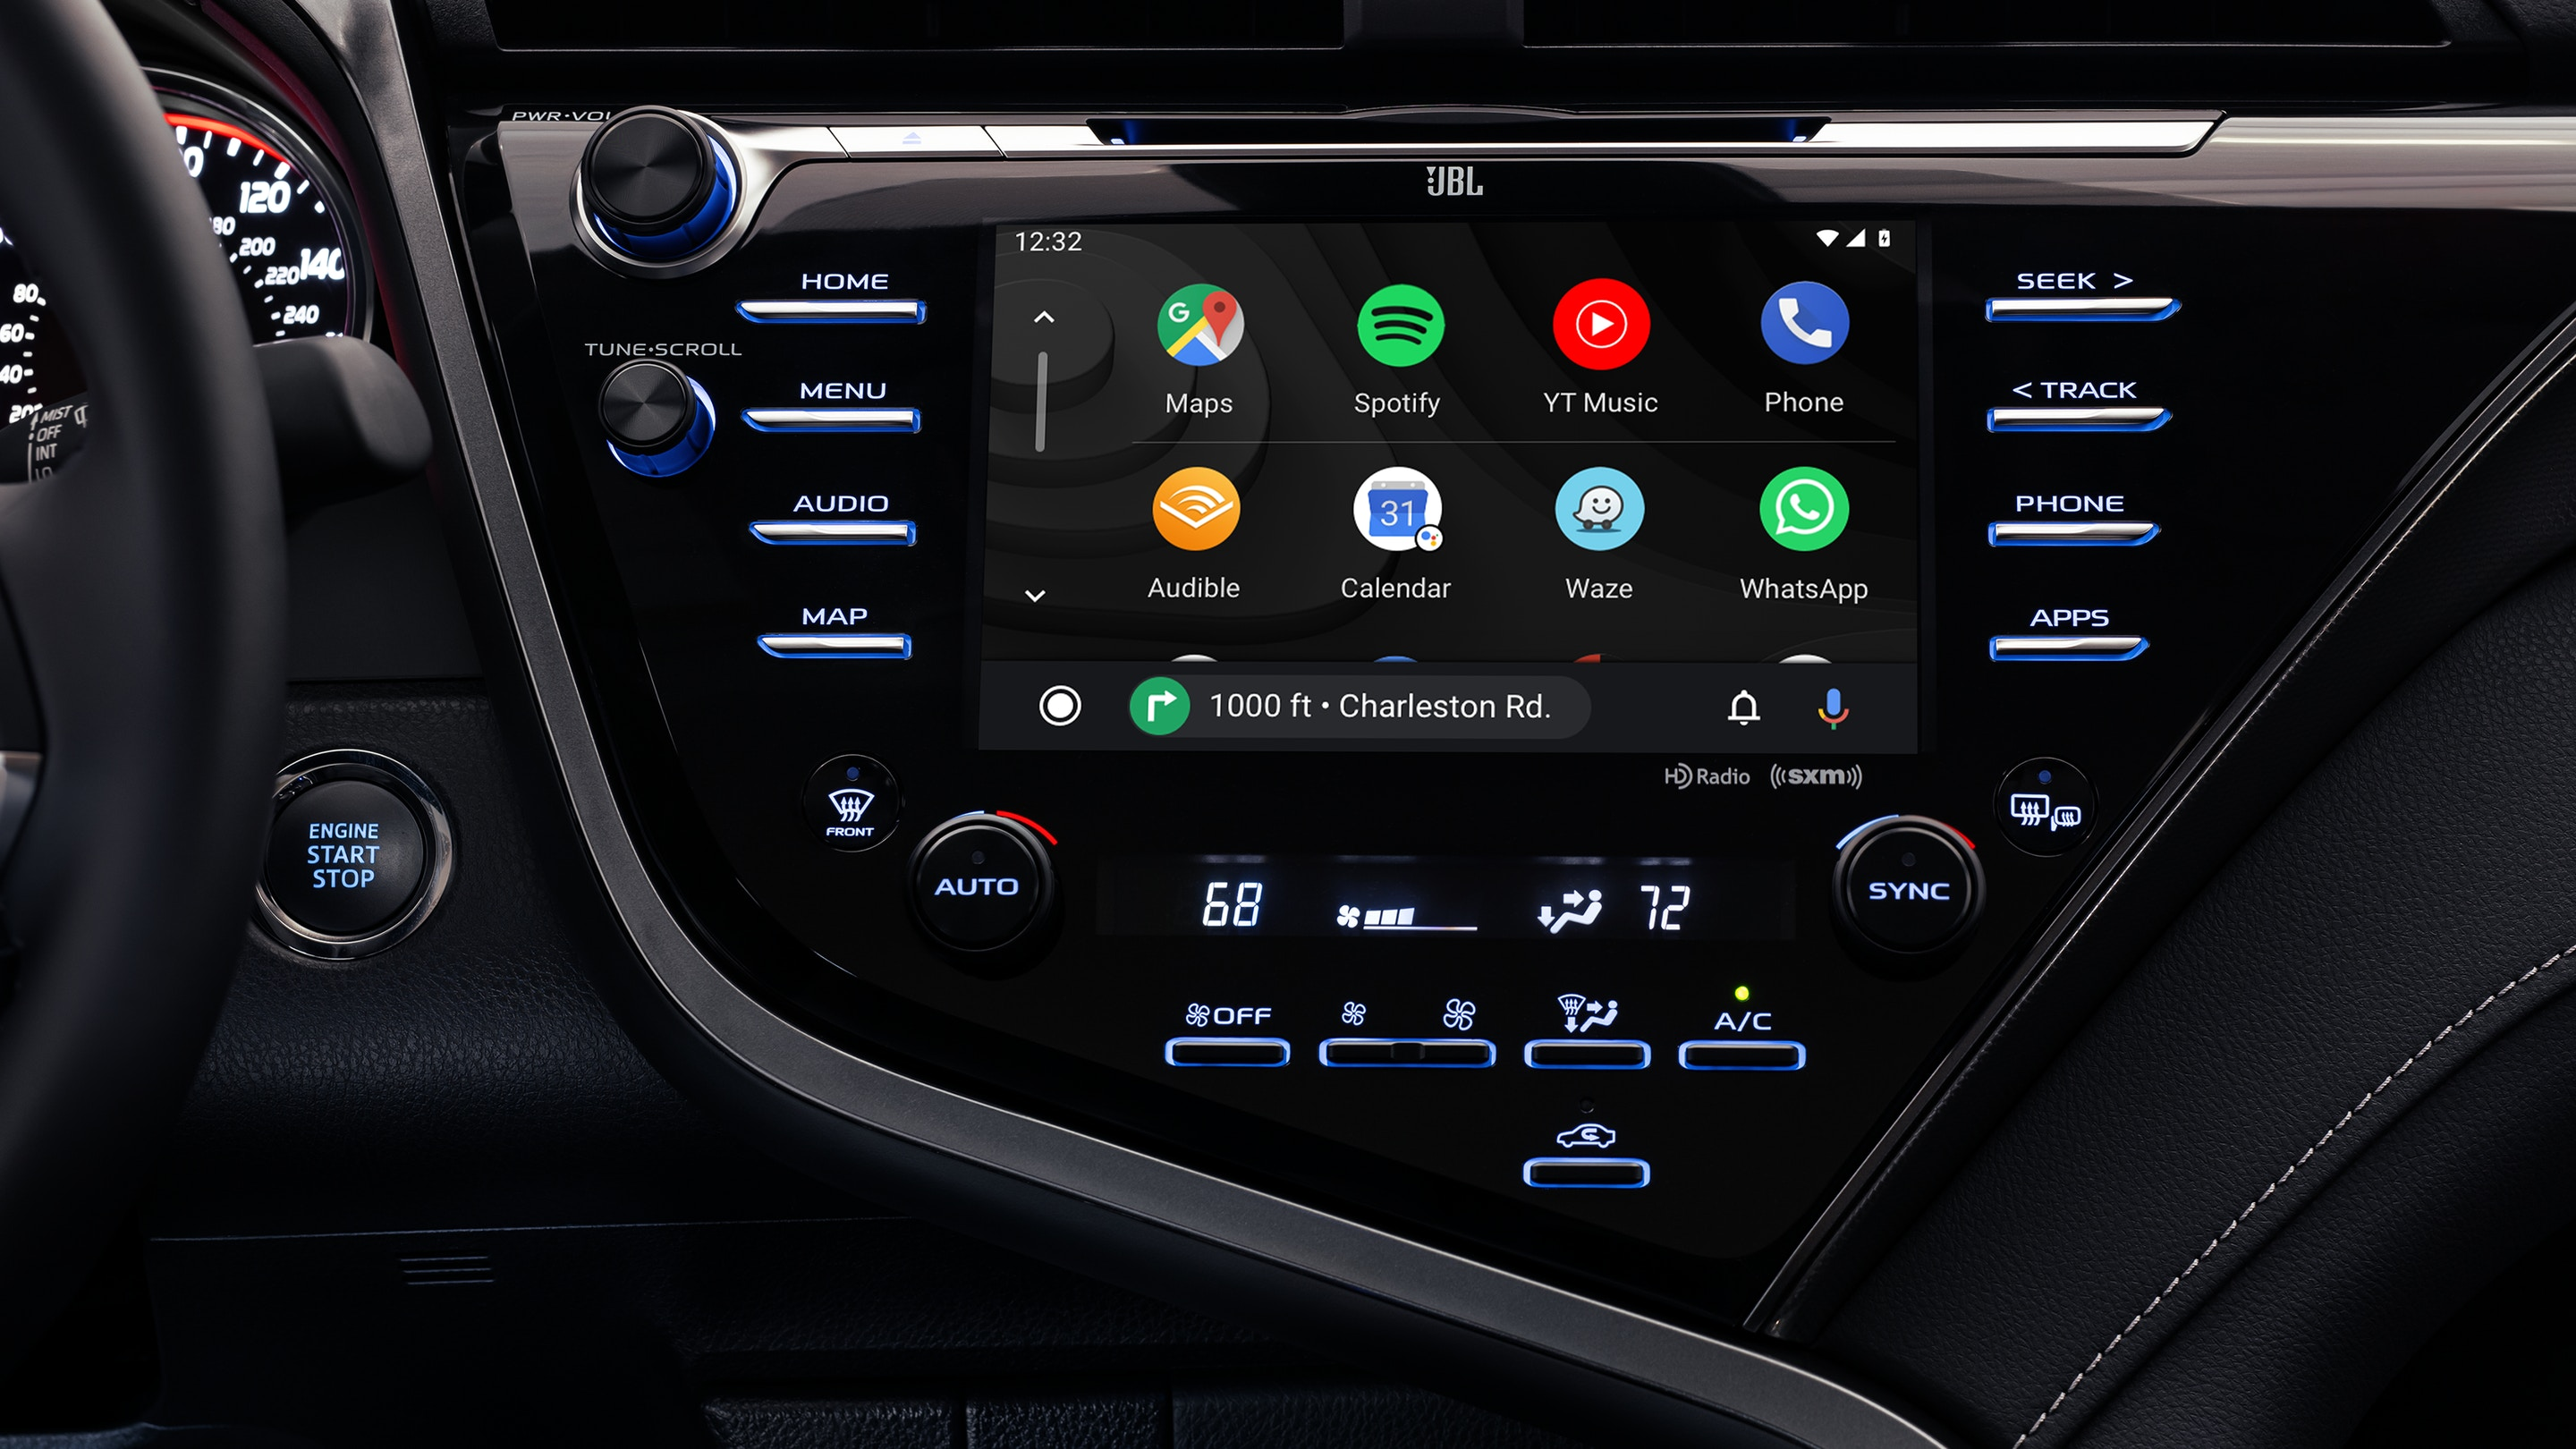 2020 Toyota Camry Touchscreen Display